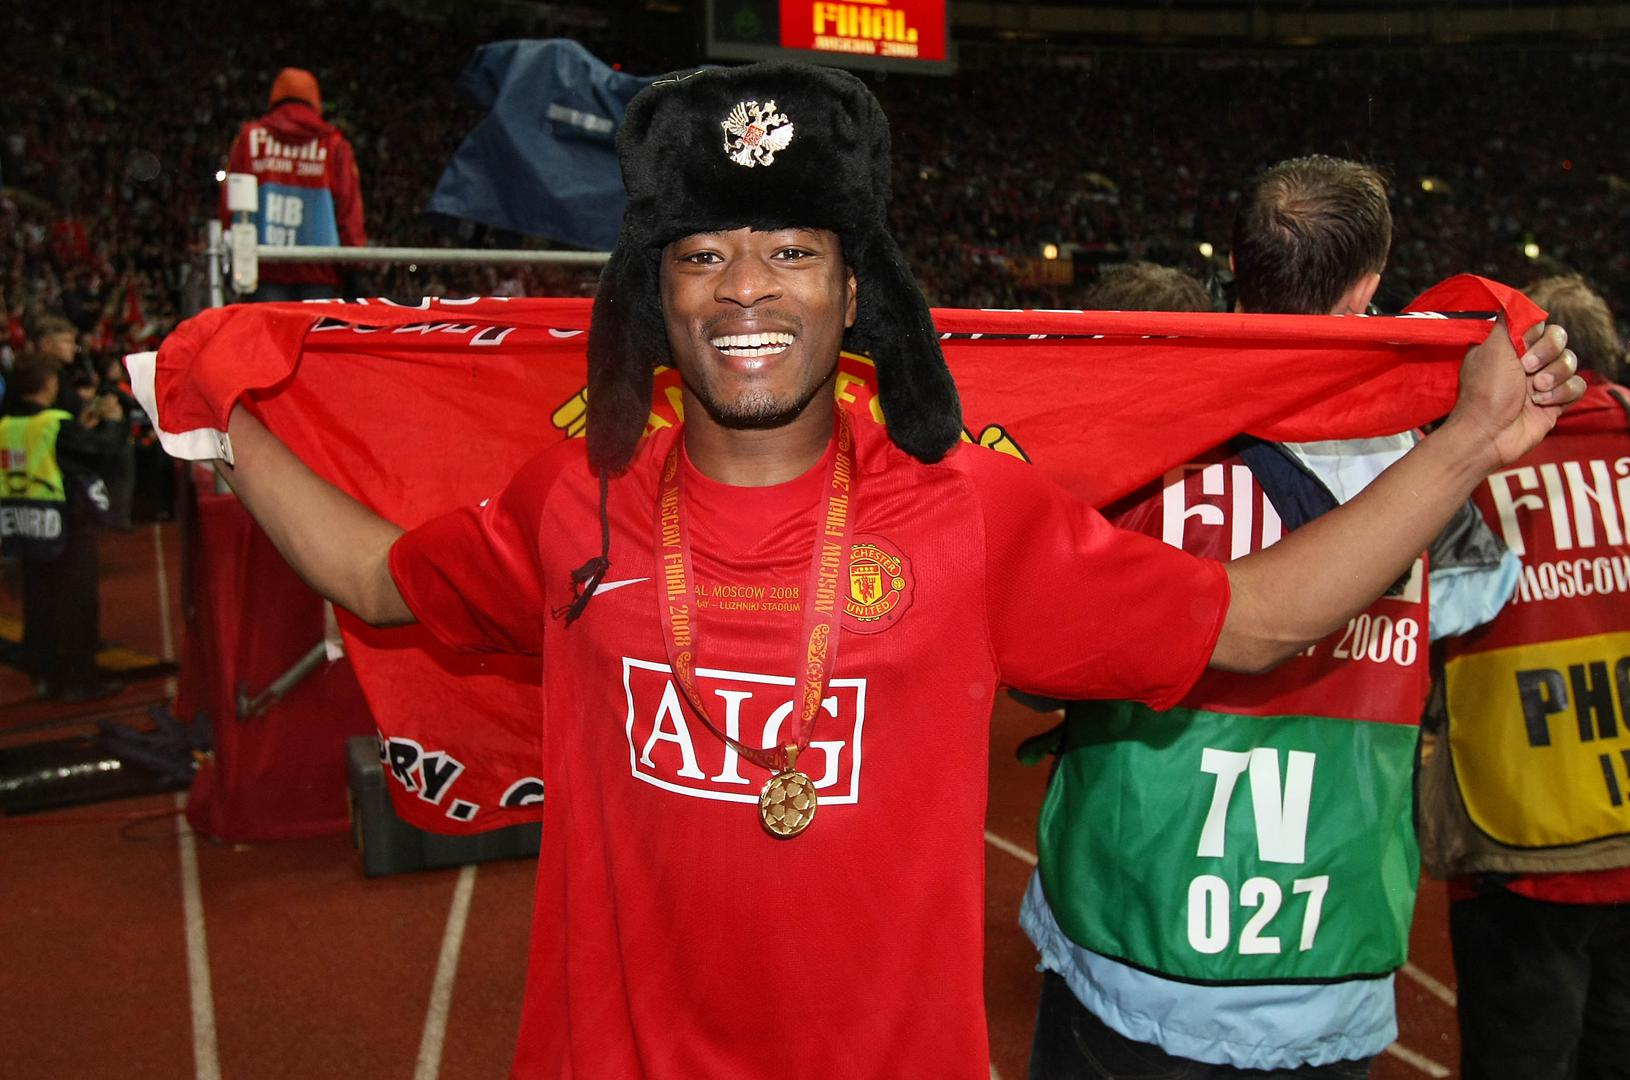 Patrice Evra 。。celebrates after United win the 2008 Champions League final in Moscow